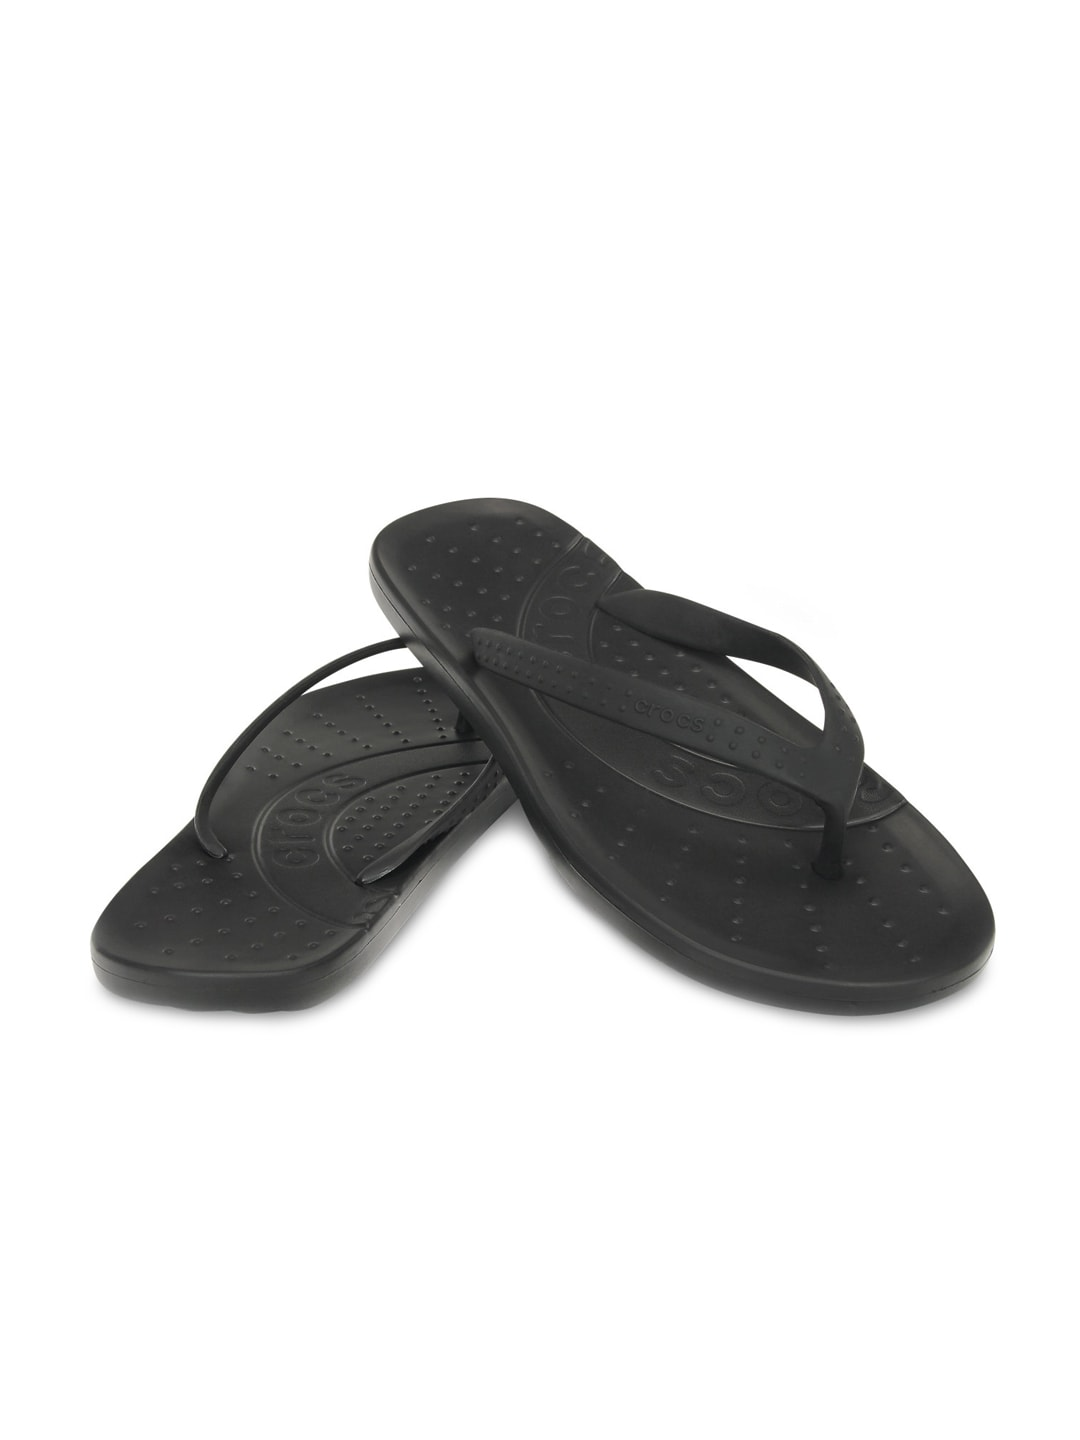 694af7e2d Crocs 15963-001 Men Black Flip Flops - Best Price in India